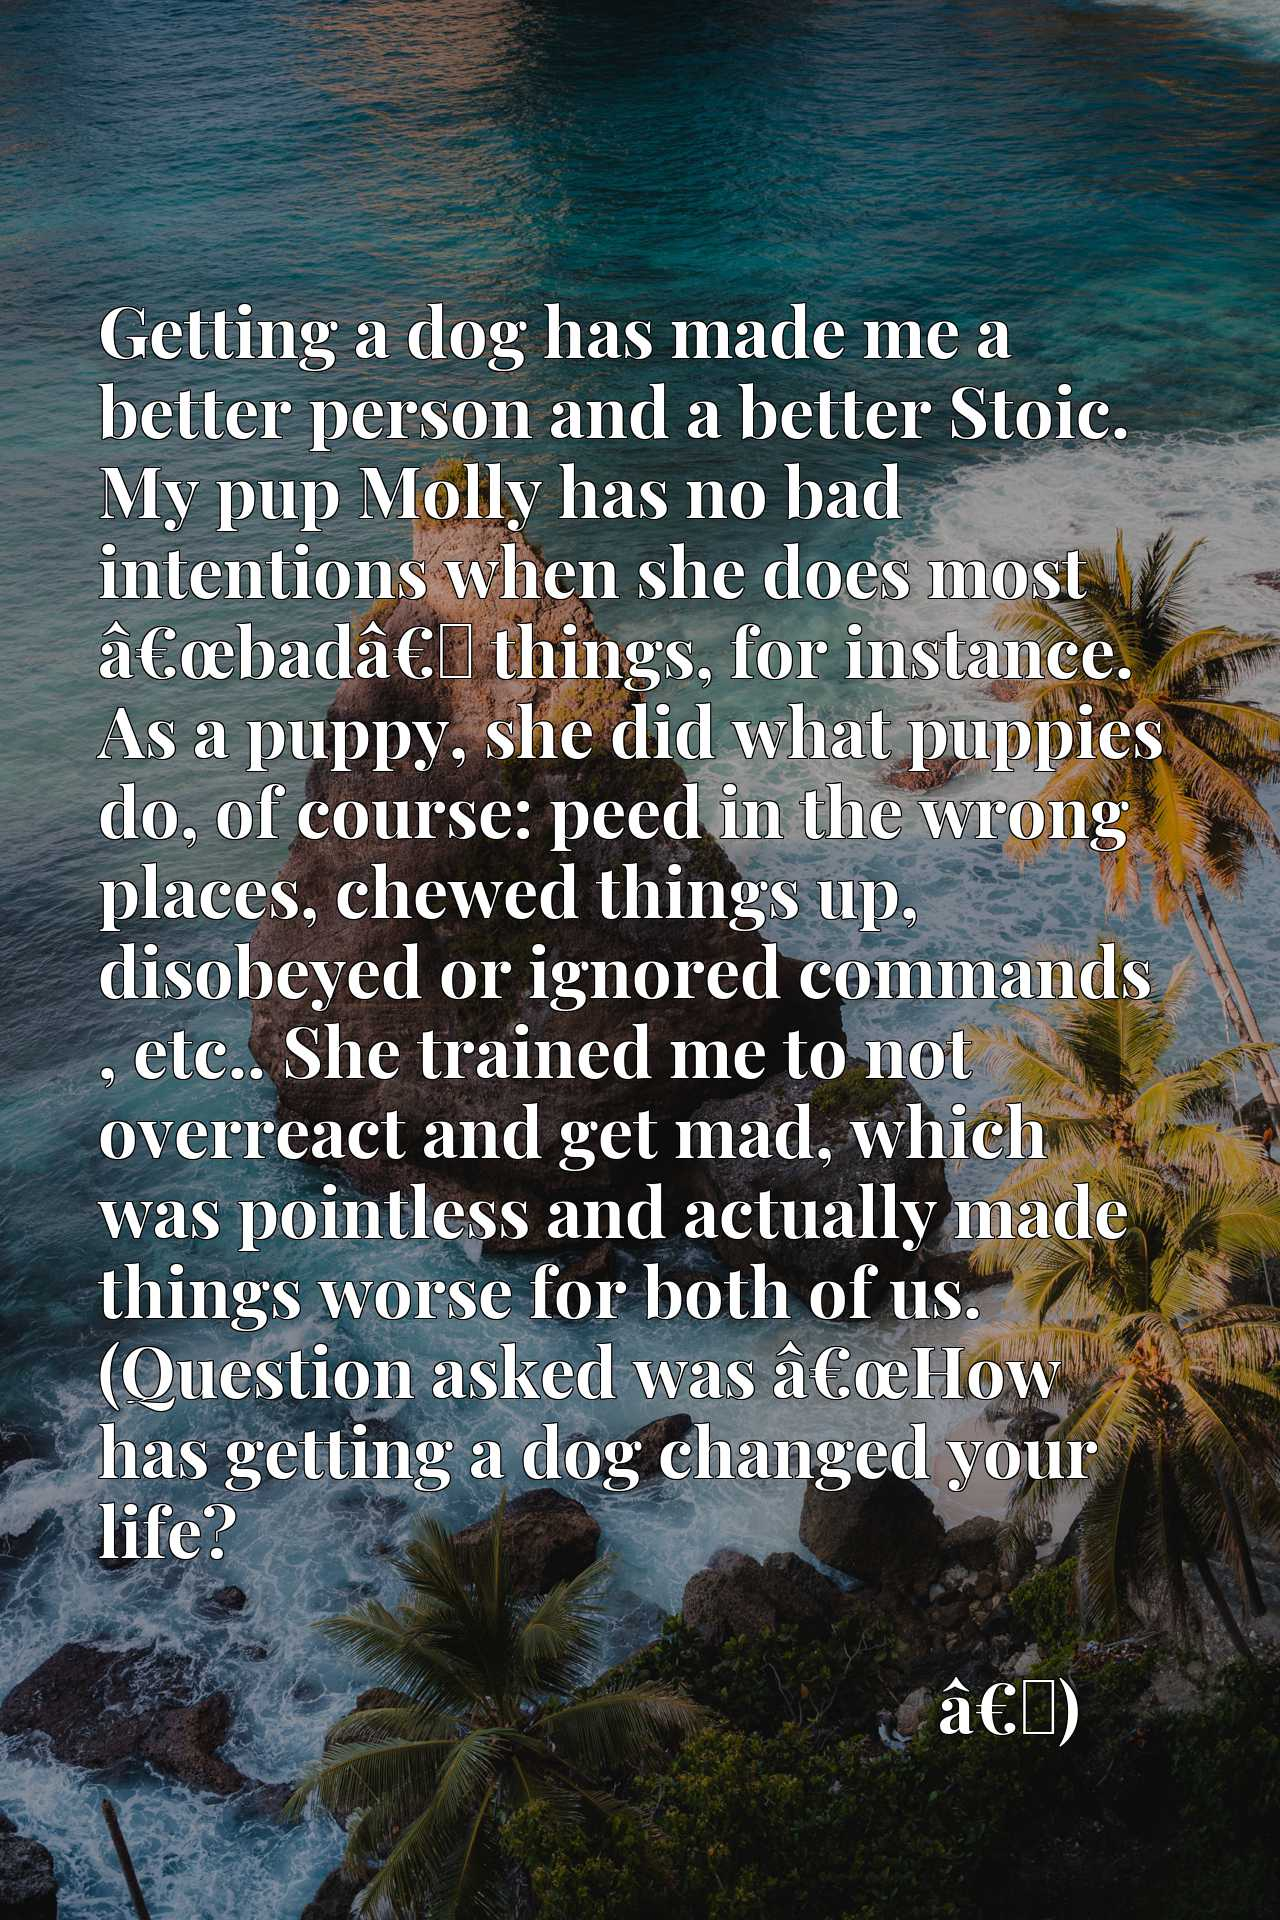 Getting a dog has made me a better person and a better Stoic. My pup Molly has no bad intentions when she does most aEURoebadaEURx9d things, for instance. As a puppy, she did what puppies do, of course: peed in the wrong places, chewed things up, disobeyed or ignored commands , etc.. She trained me to not overreact and get mad, which was pointless and actually made things worse for both of us. (Question asked was aEURoeHow has getting a dog changed your life?